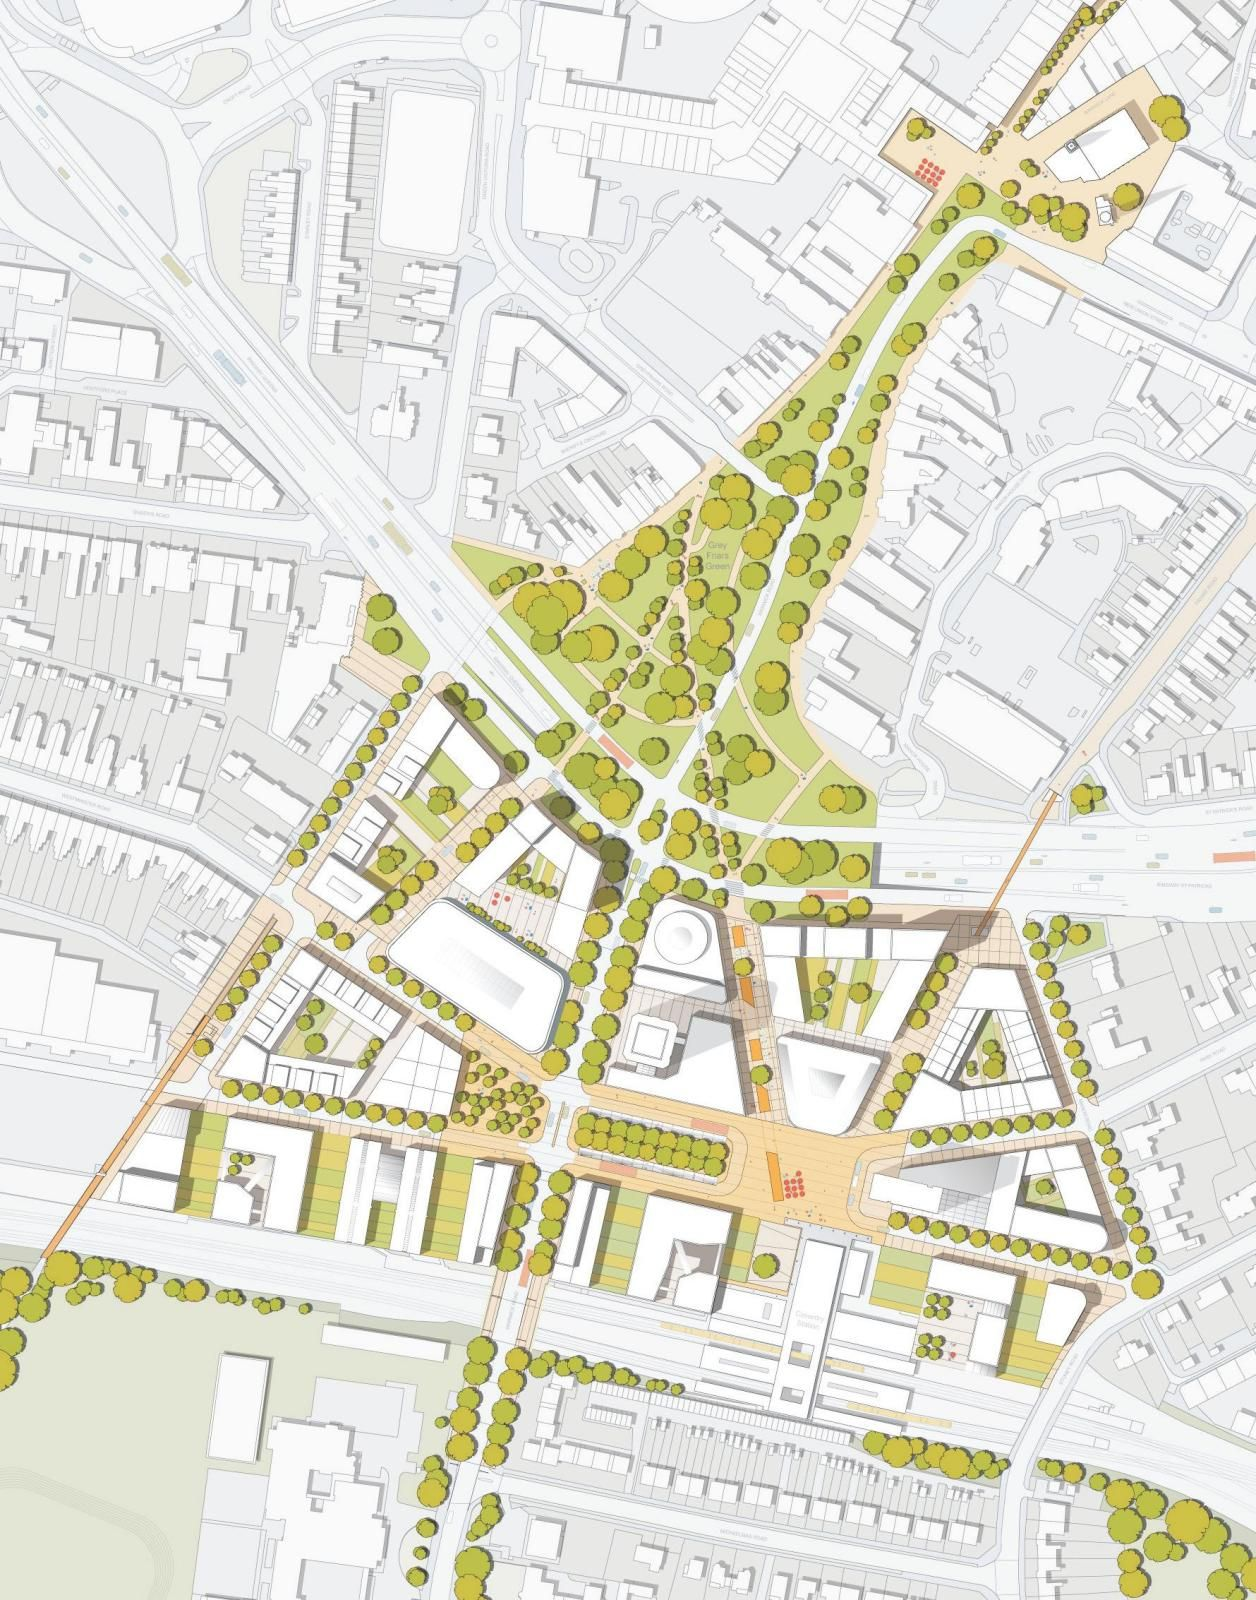 I like the attention to green space here dl friargate for Coventry plan